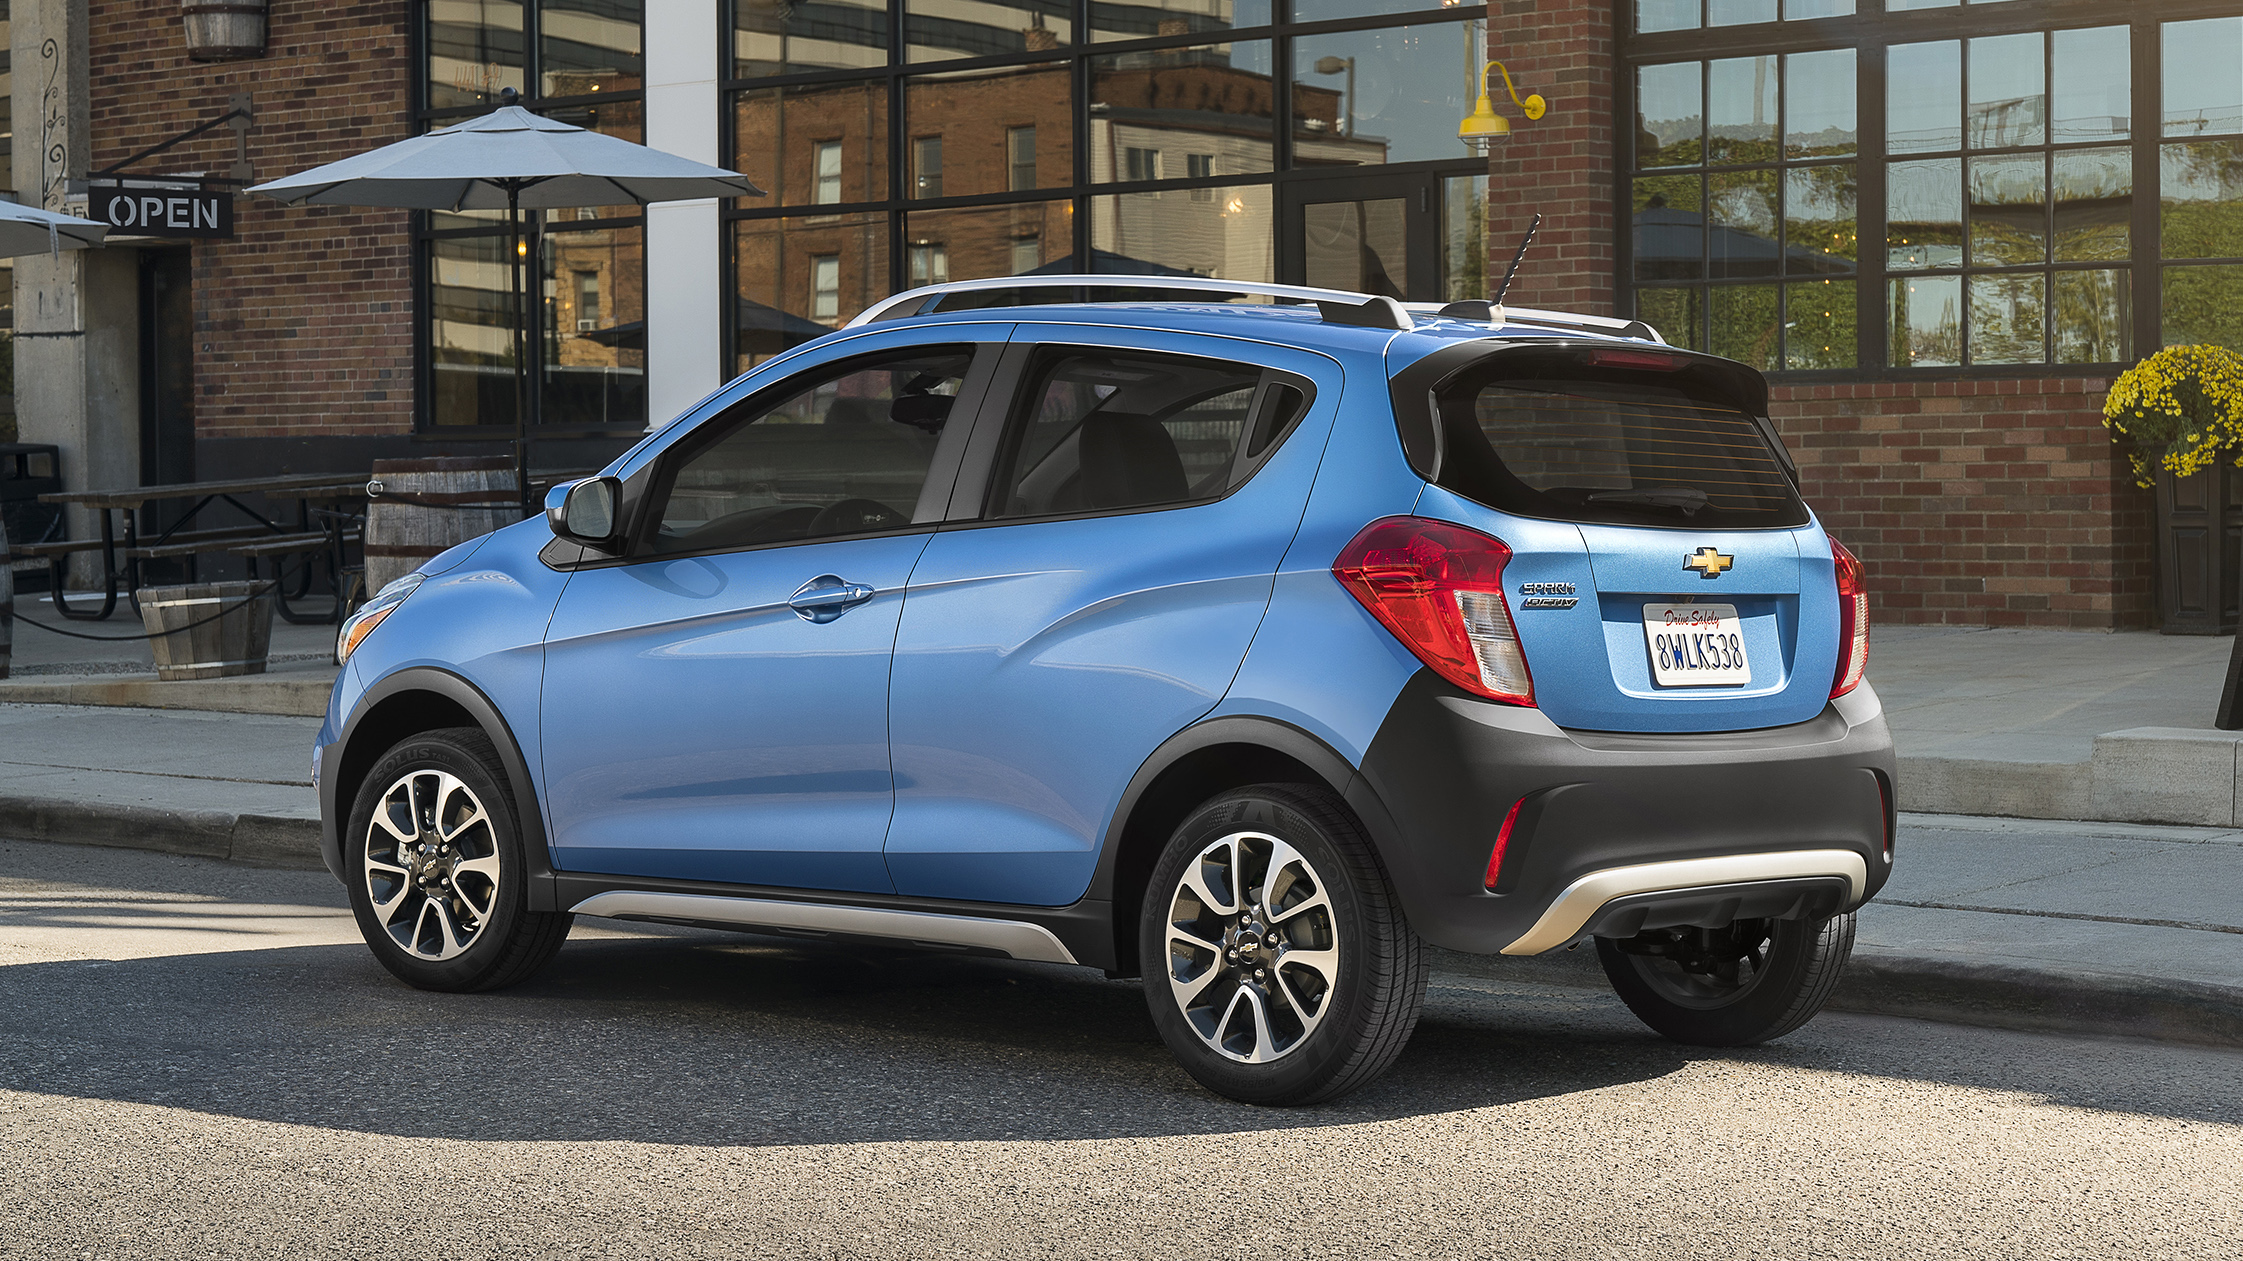 The 2017 Chevrolet Spark ACTIV is a sportier take on the brand's versatile, connected mini-car, featuring trail-inspired accents and upscale features that complement its urban-chic design. It will be available for sale in the first quarter of 2017.